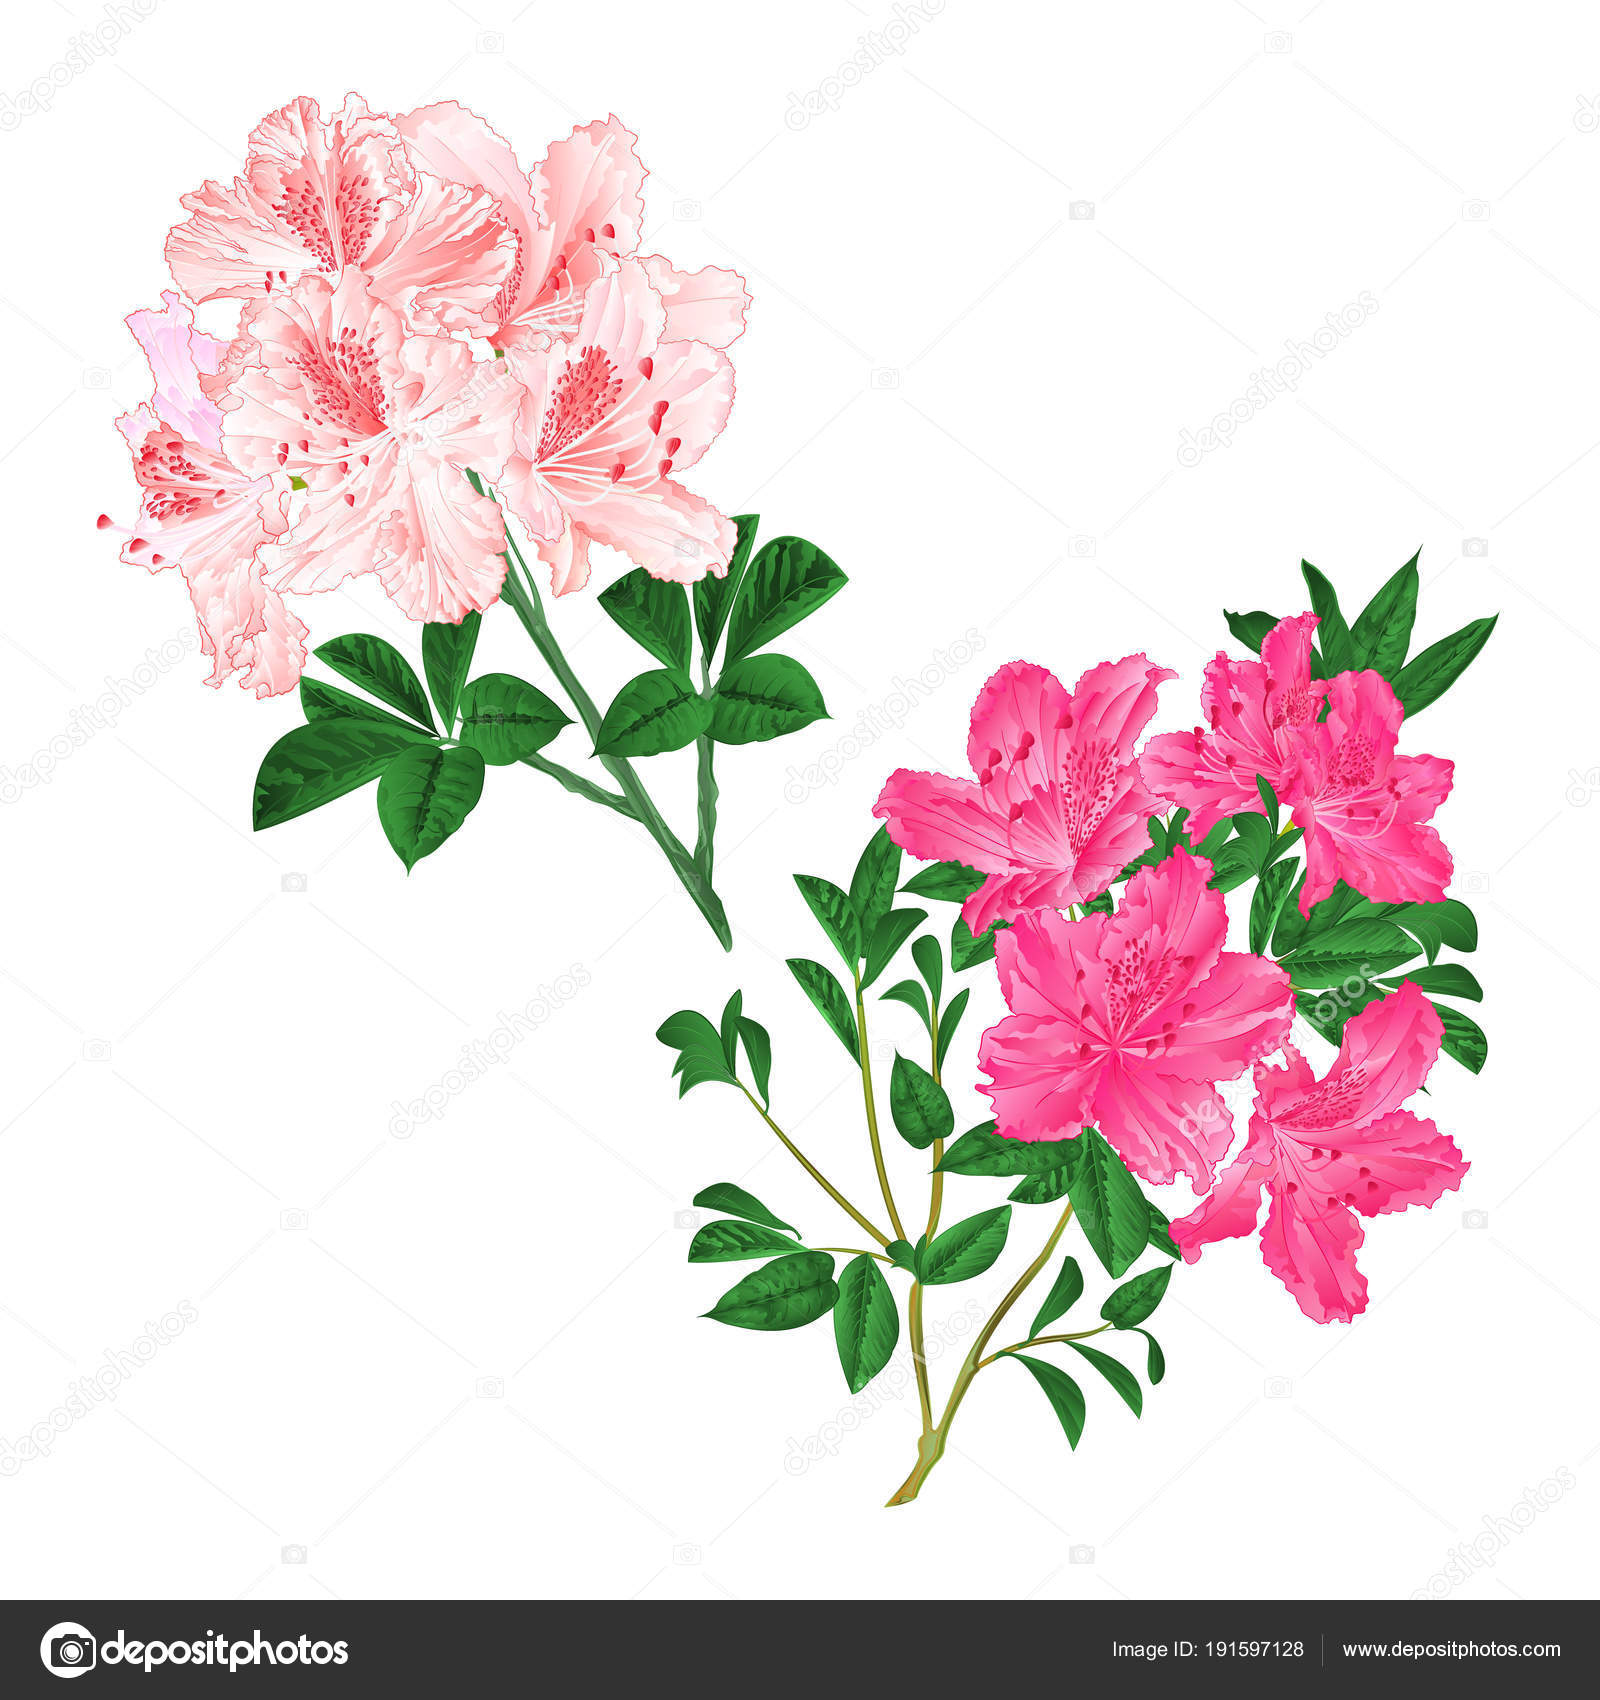 Branches light pink pink flowers rhododendrons mountain shrub white branches light pink and pink flowers rhododendrons mountain shrub on a white background set six vintage vector illustration editable hand draw vector by mightylinksfo